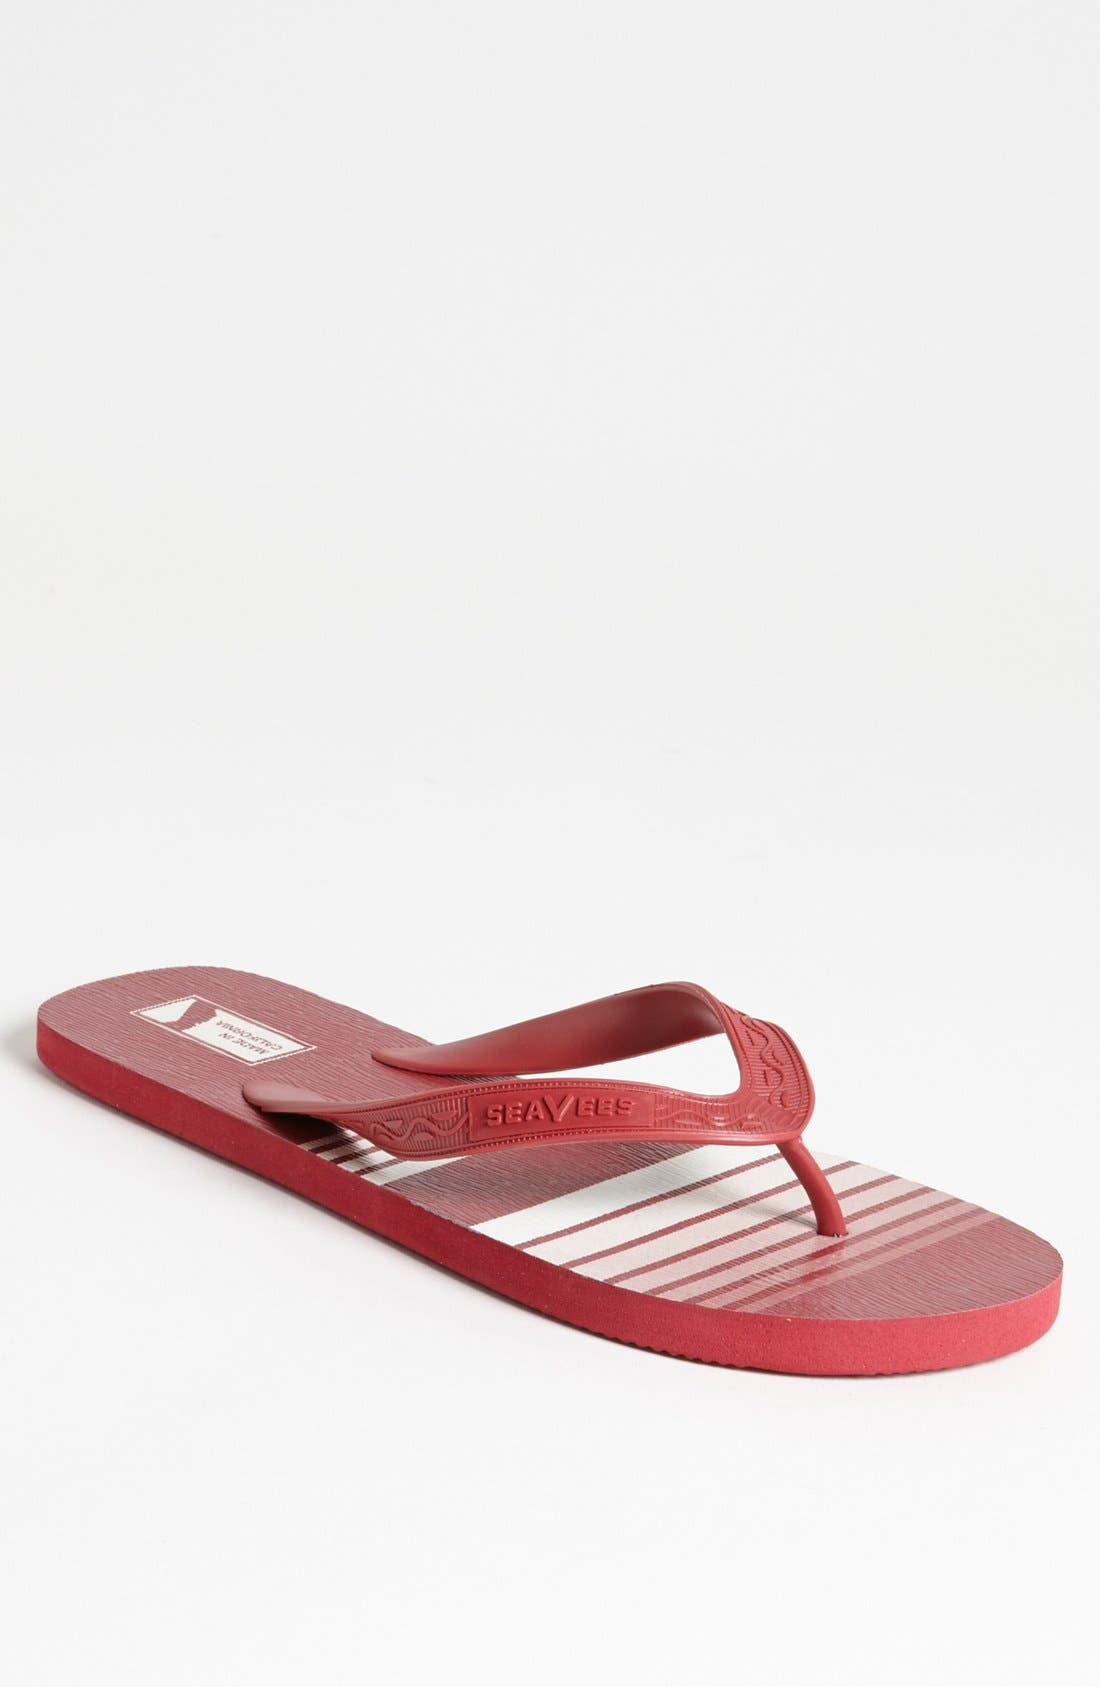 Alternate Image 1 Selected - SeaVees 'California' Flip Flop